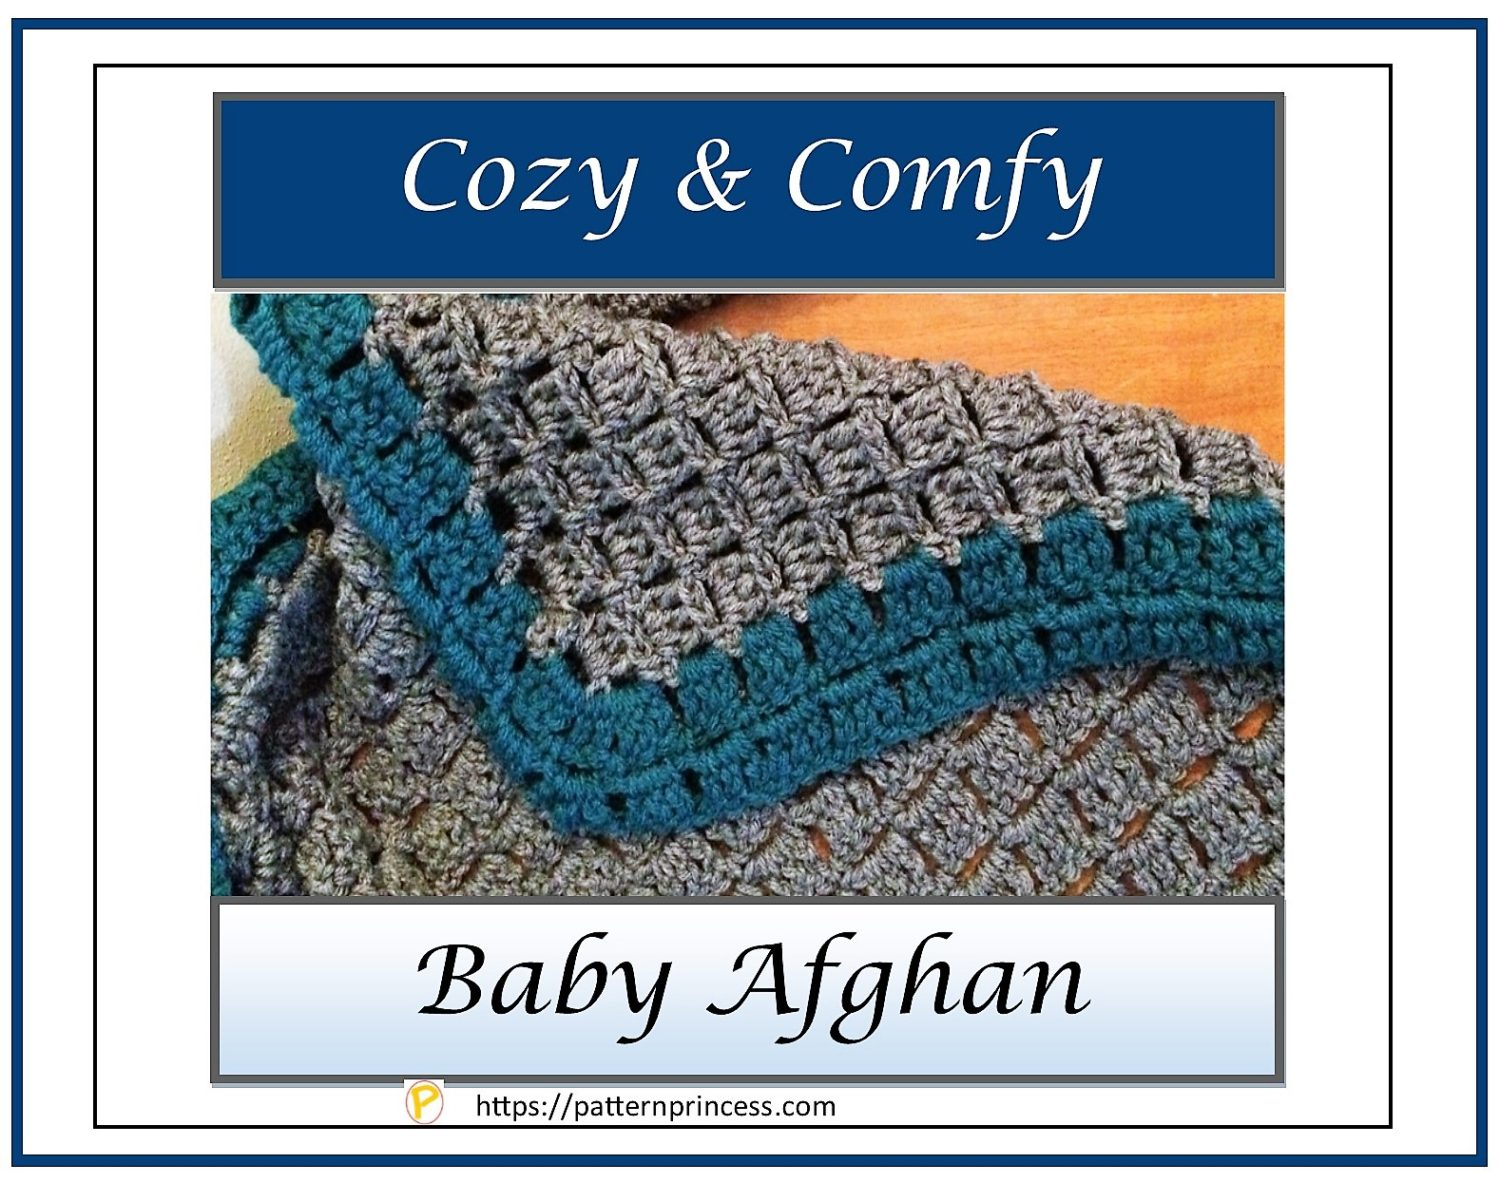 Cozy & Comfy Baby Afghan 1